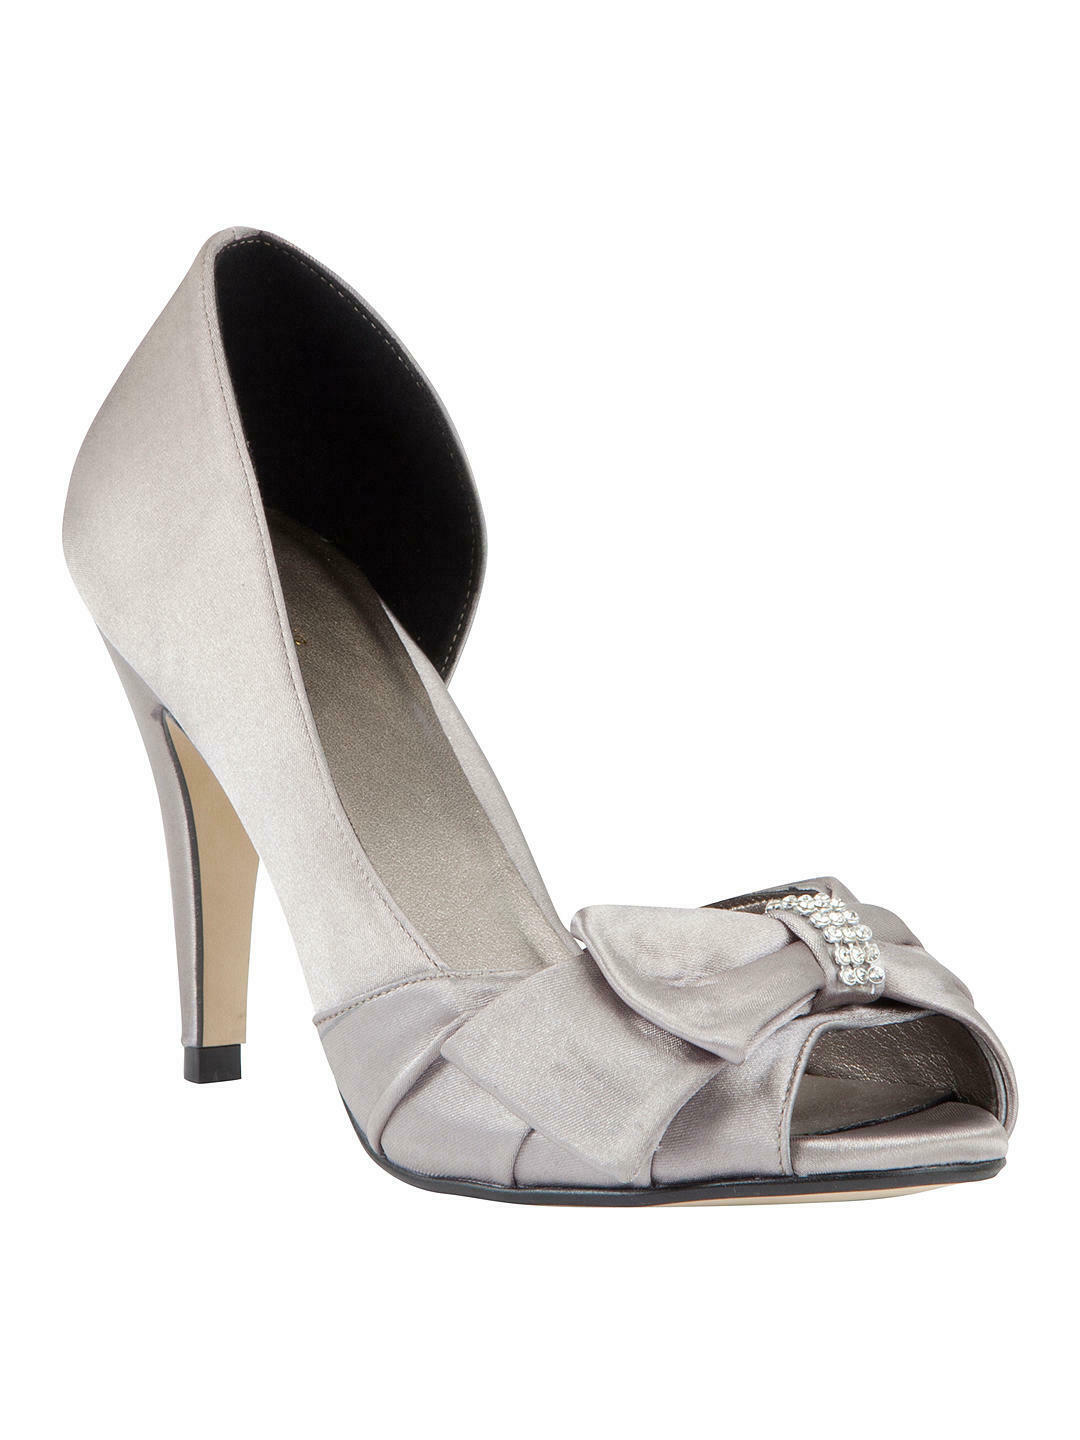 JOHN LEWIS - Satin Exposed Peep Toe Court shoes, Silver - UK Sizes 3 , 7 , or  8